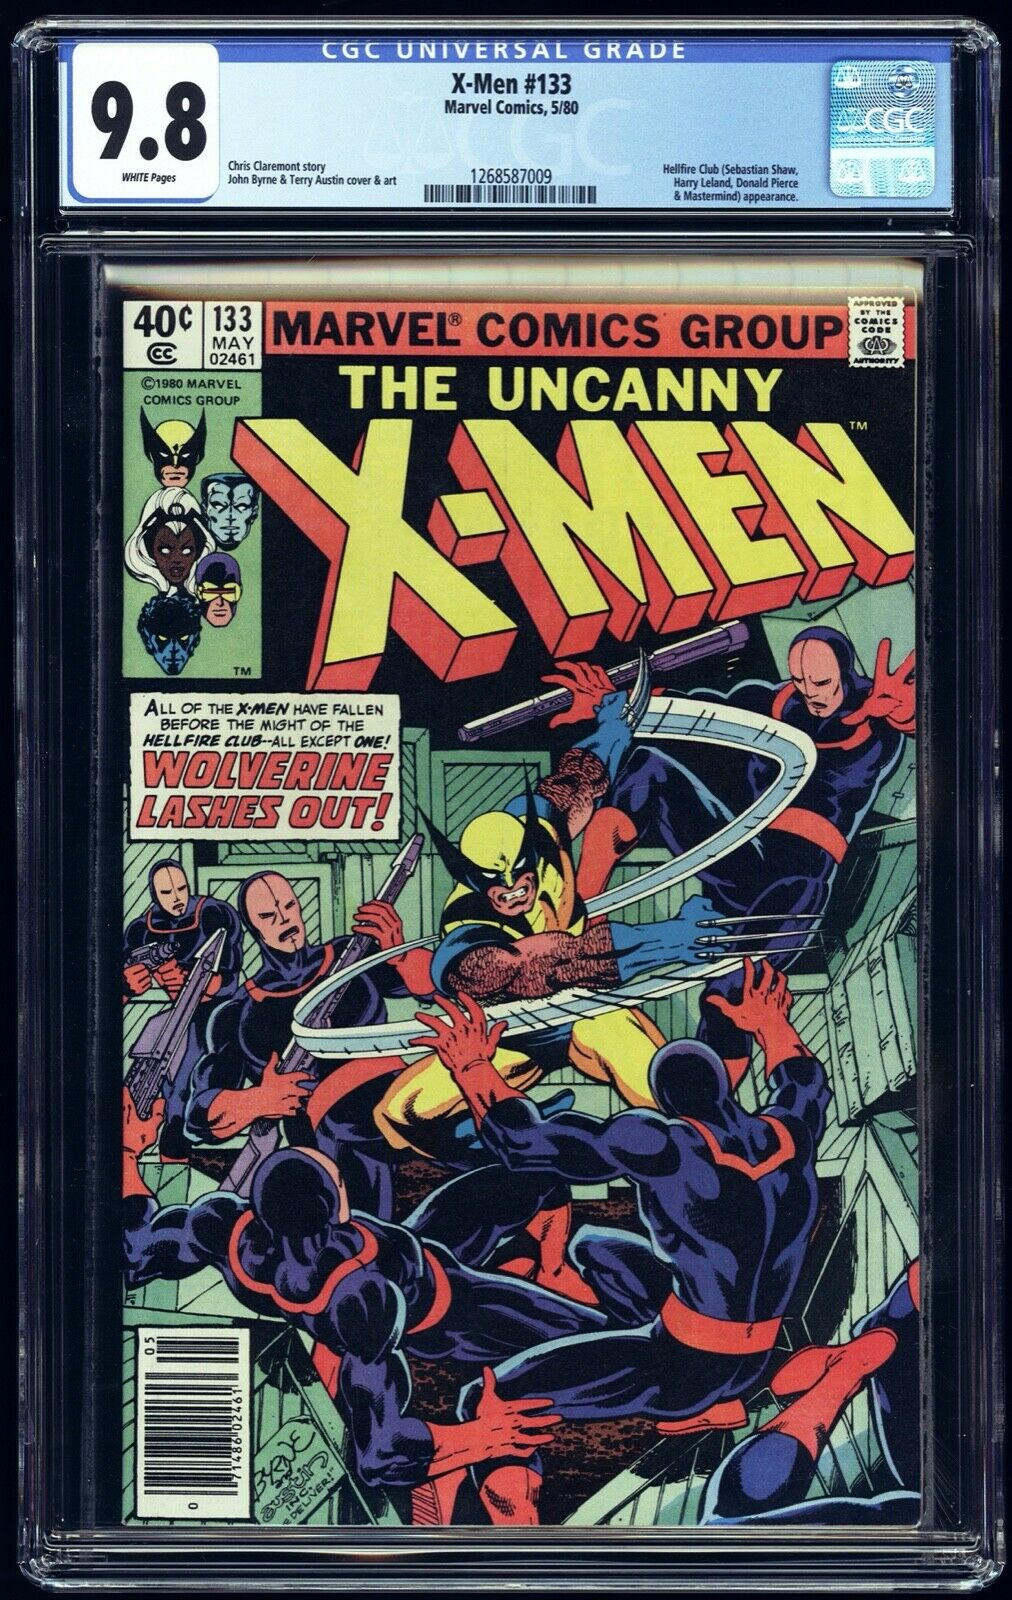 1980 UNCANNY X-MEN 133 CGC 9.8 WP NEWSSTAND 1ST WOLVERINE SOLO STORY Marvel